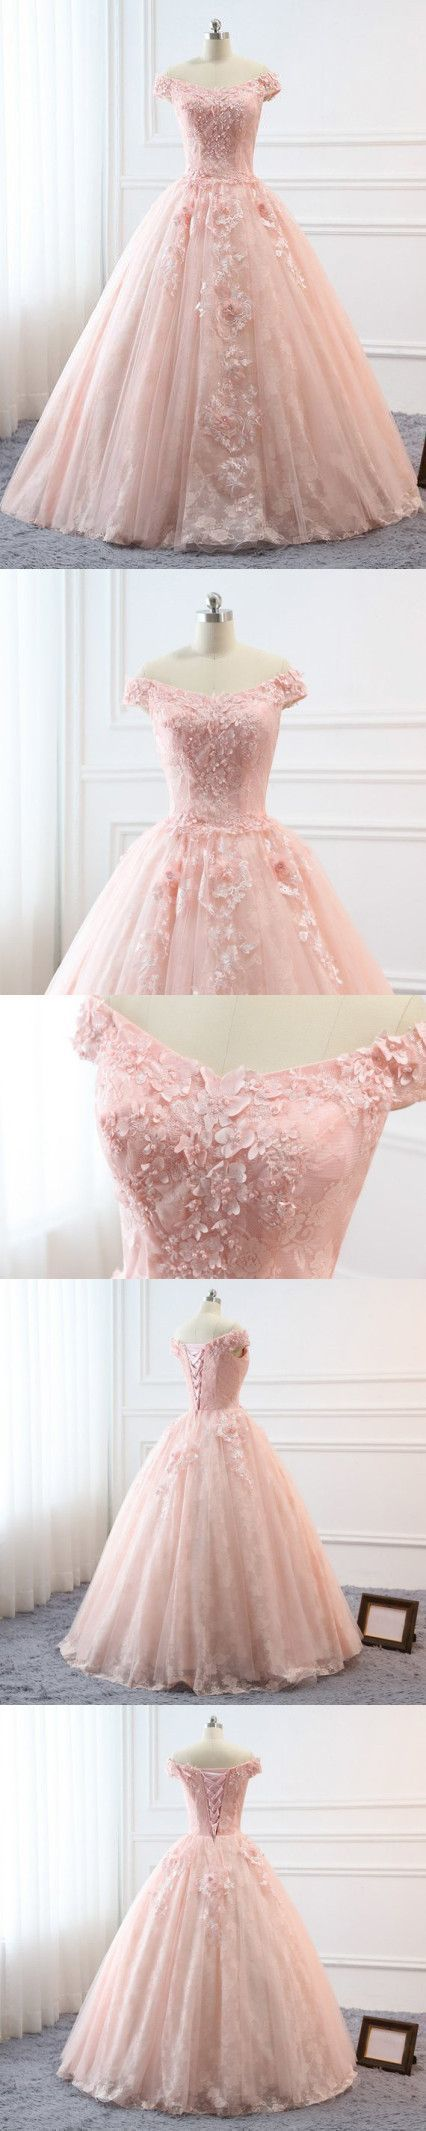 Chic A-line Off the Shoulder Lace Pink Prom Dresses Backless Evening Dress